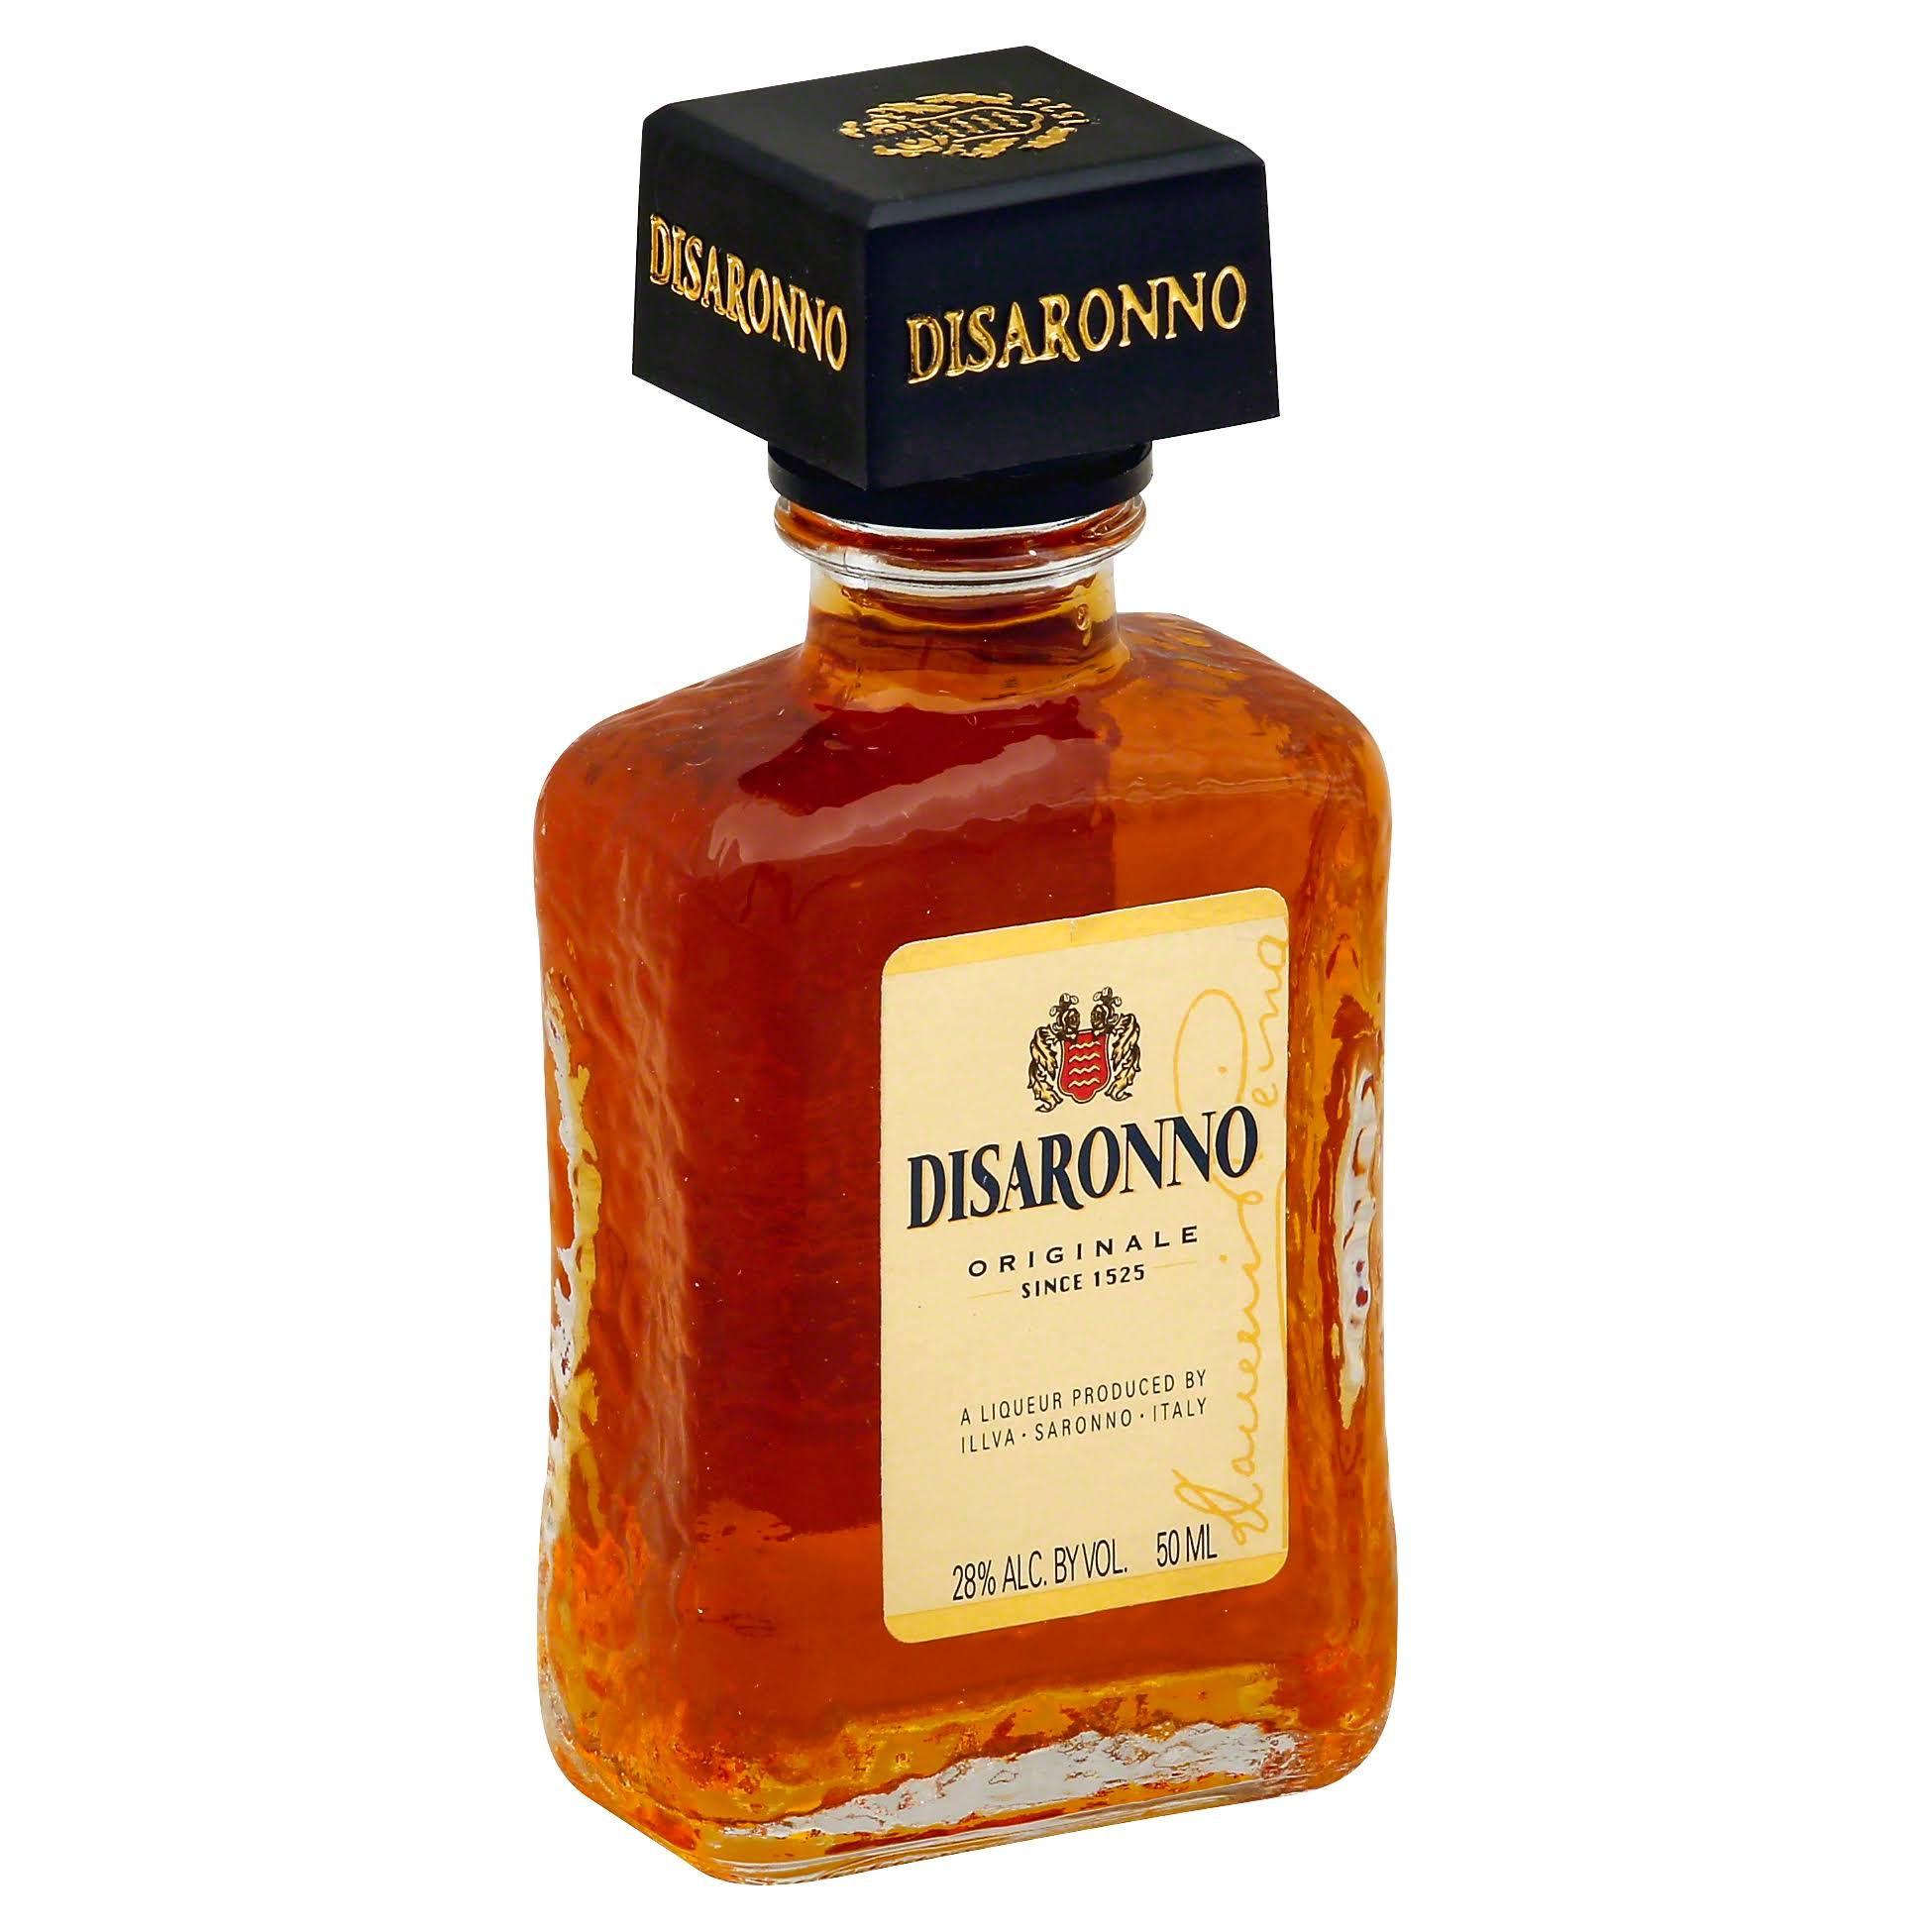 Disaronno Liqueur - 50 ml bottle